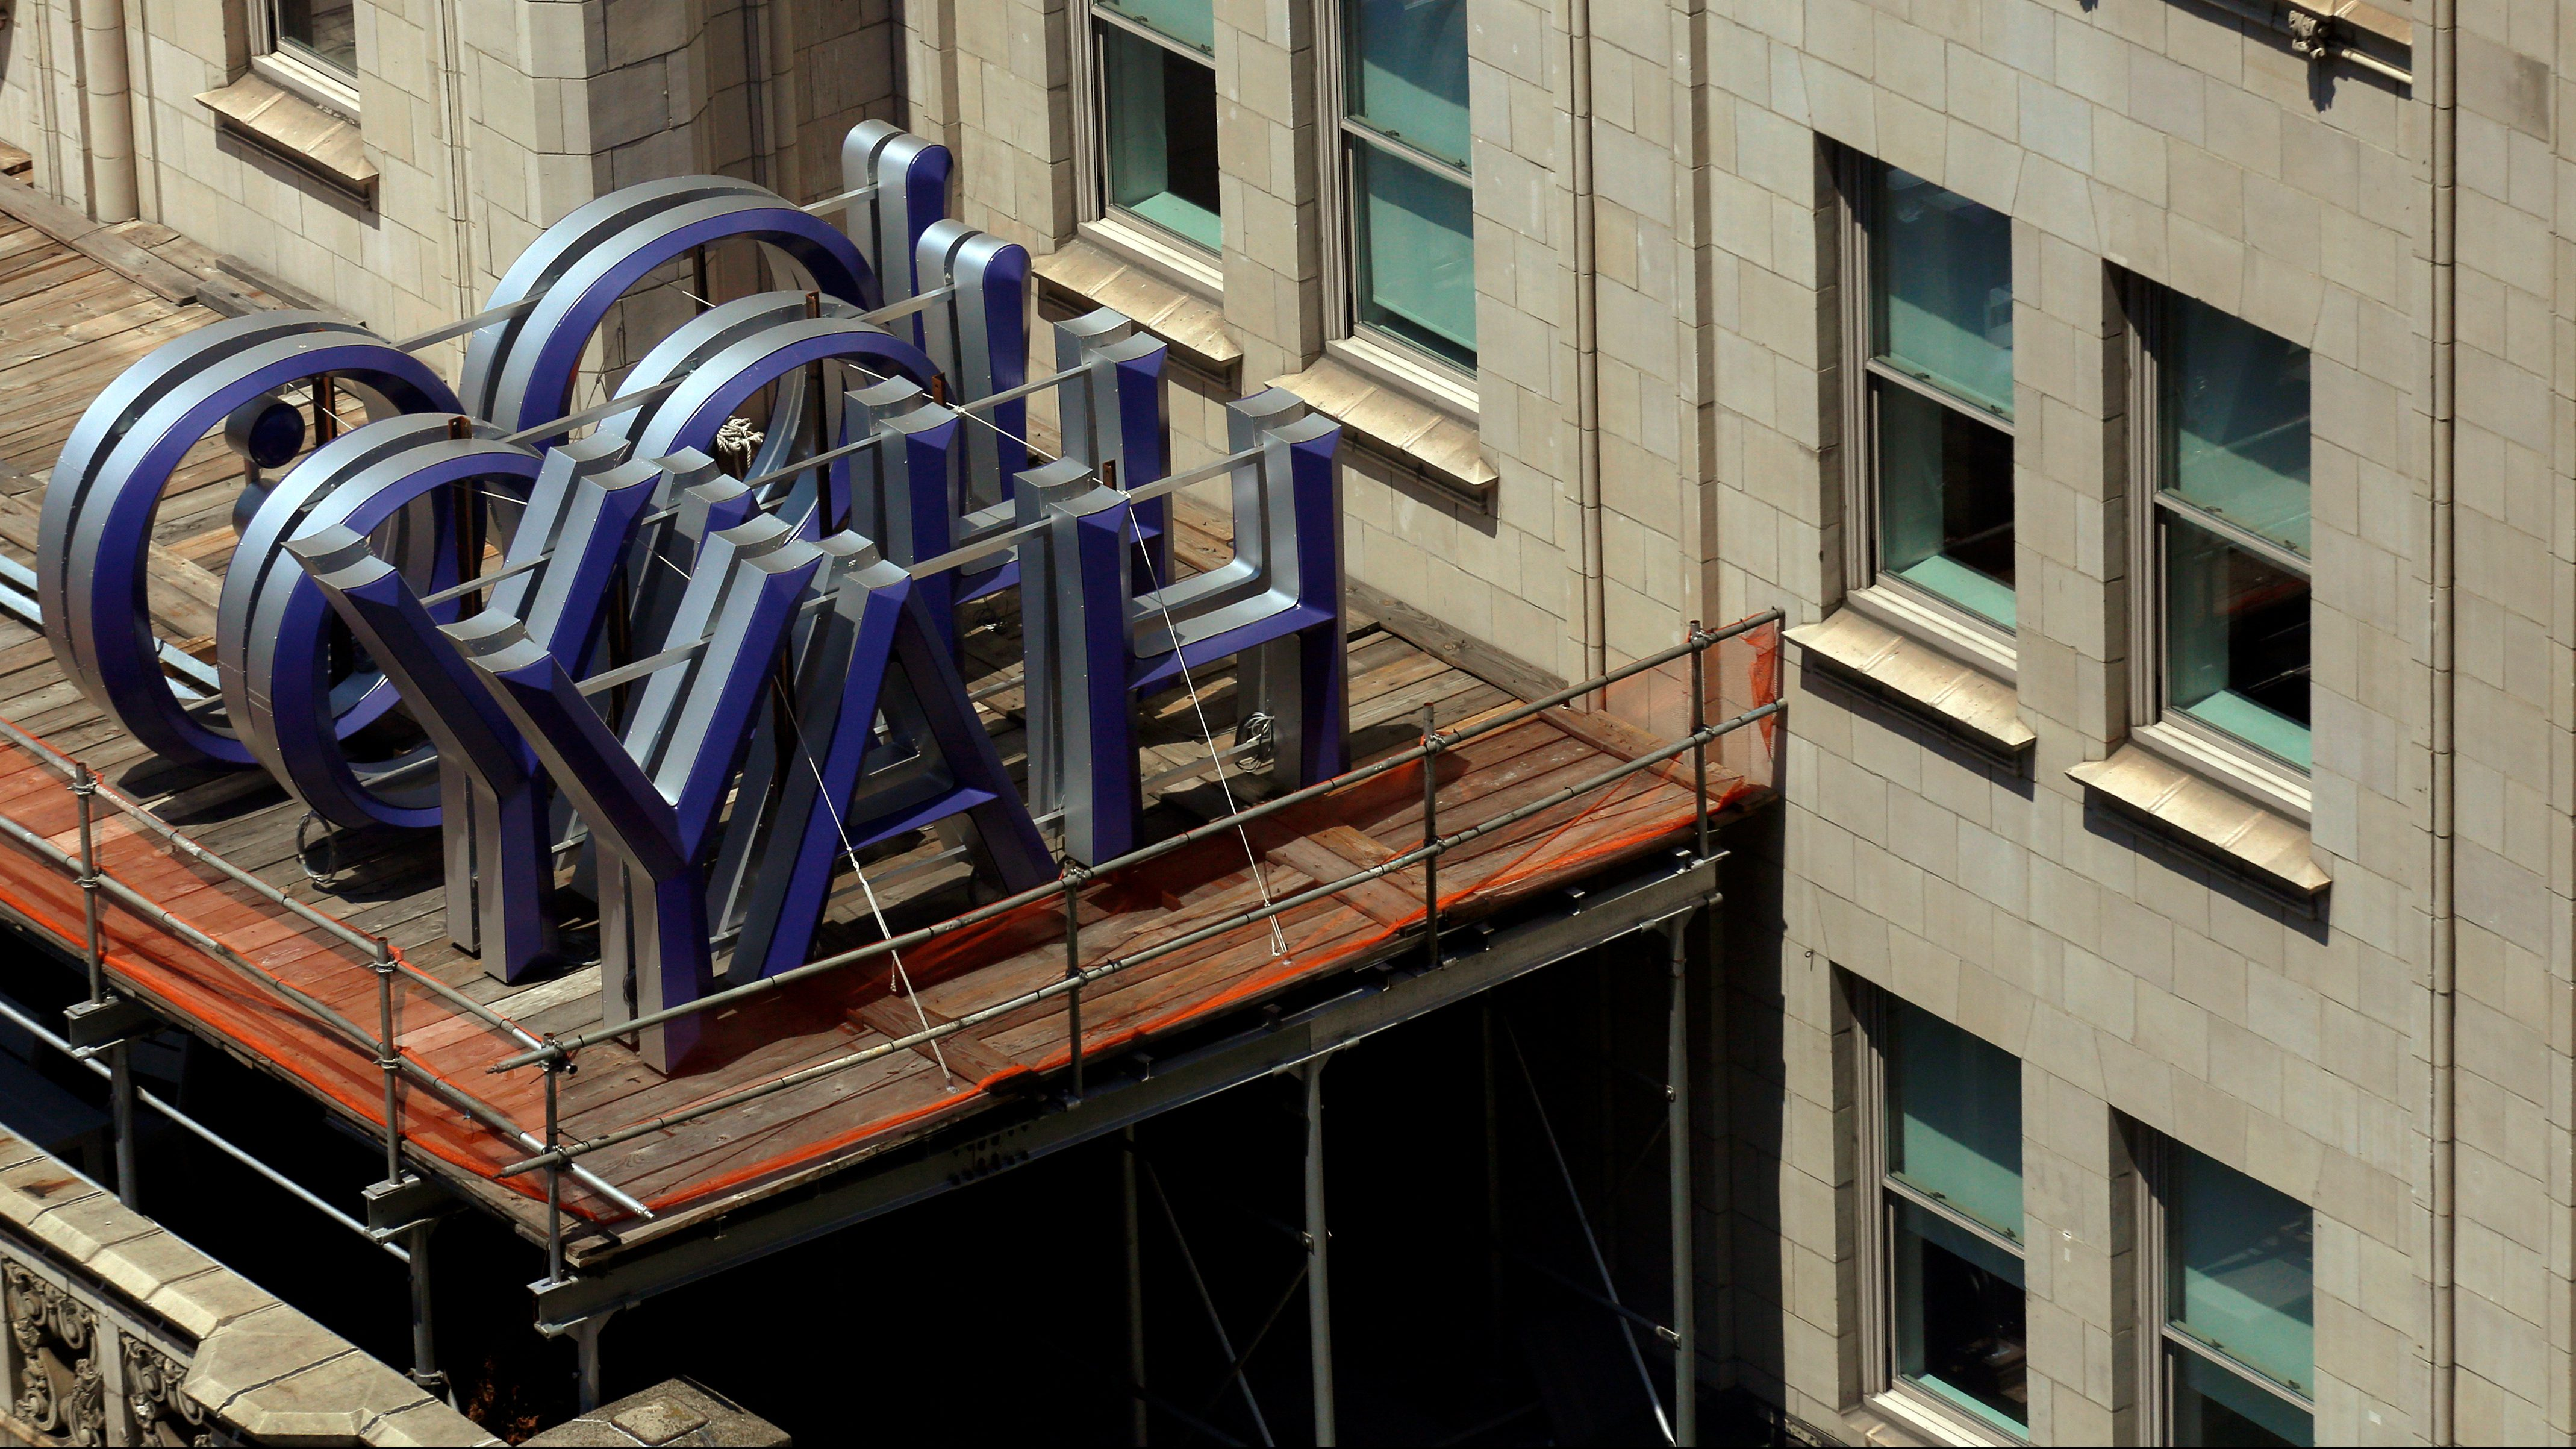 A Yahoo logo is seen on top of the building where they have offices in New York City, U.S., July 25, 2016.